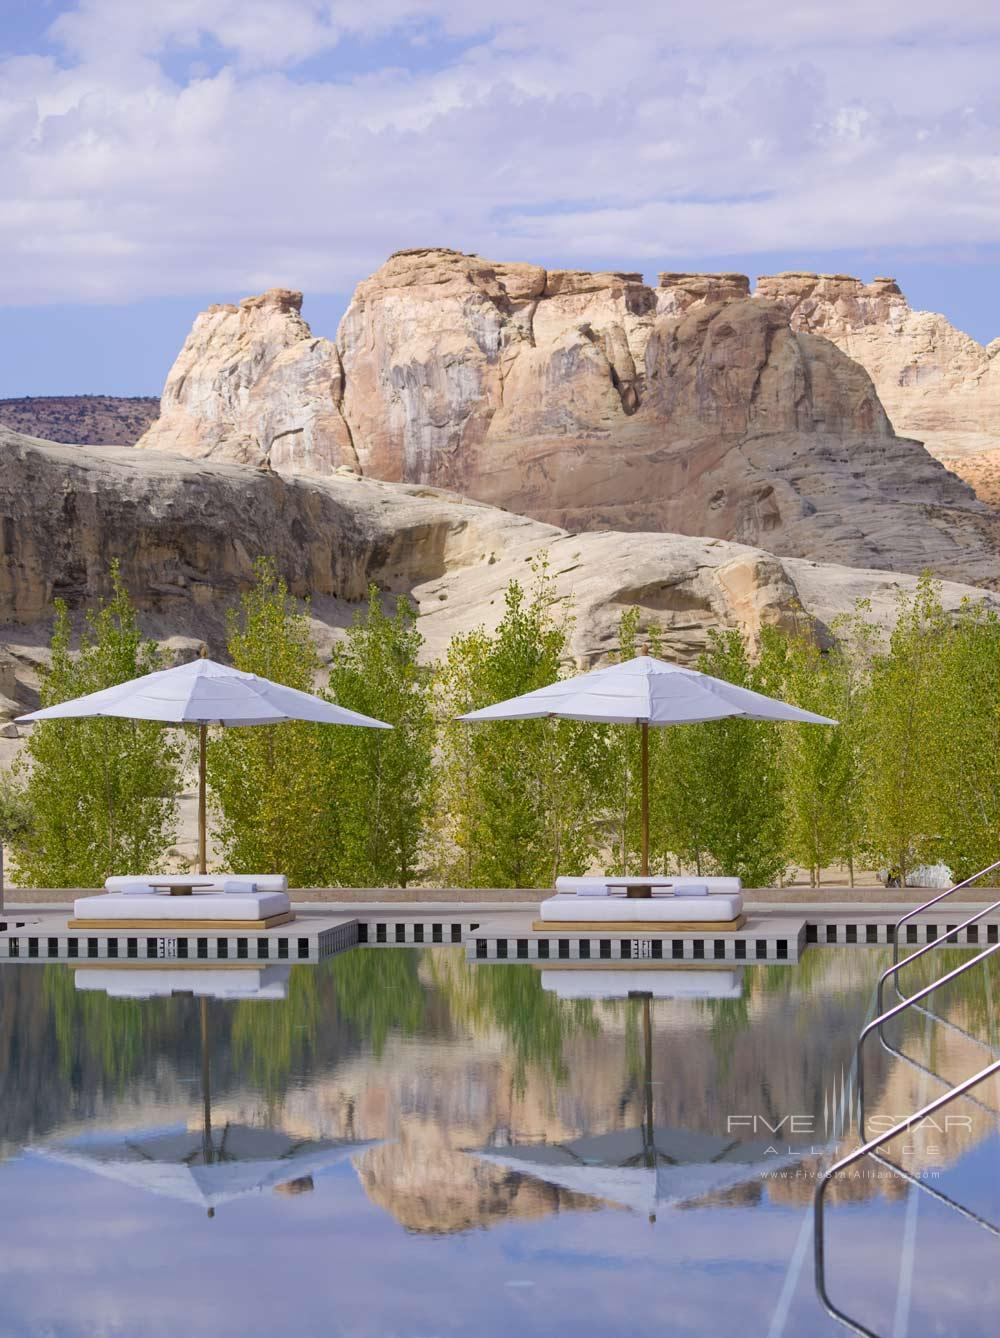 Poolside at Amangiri in Canyon PointSouthern Utah courtesy of Amanresorts